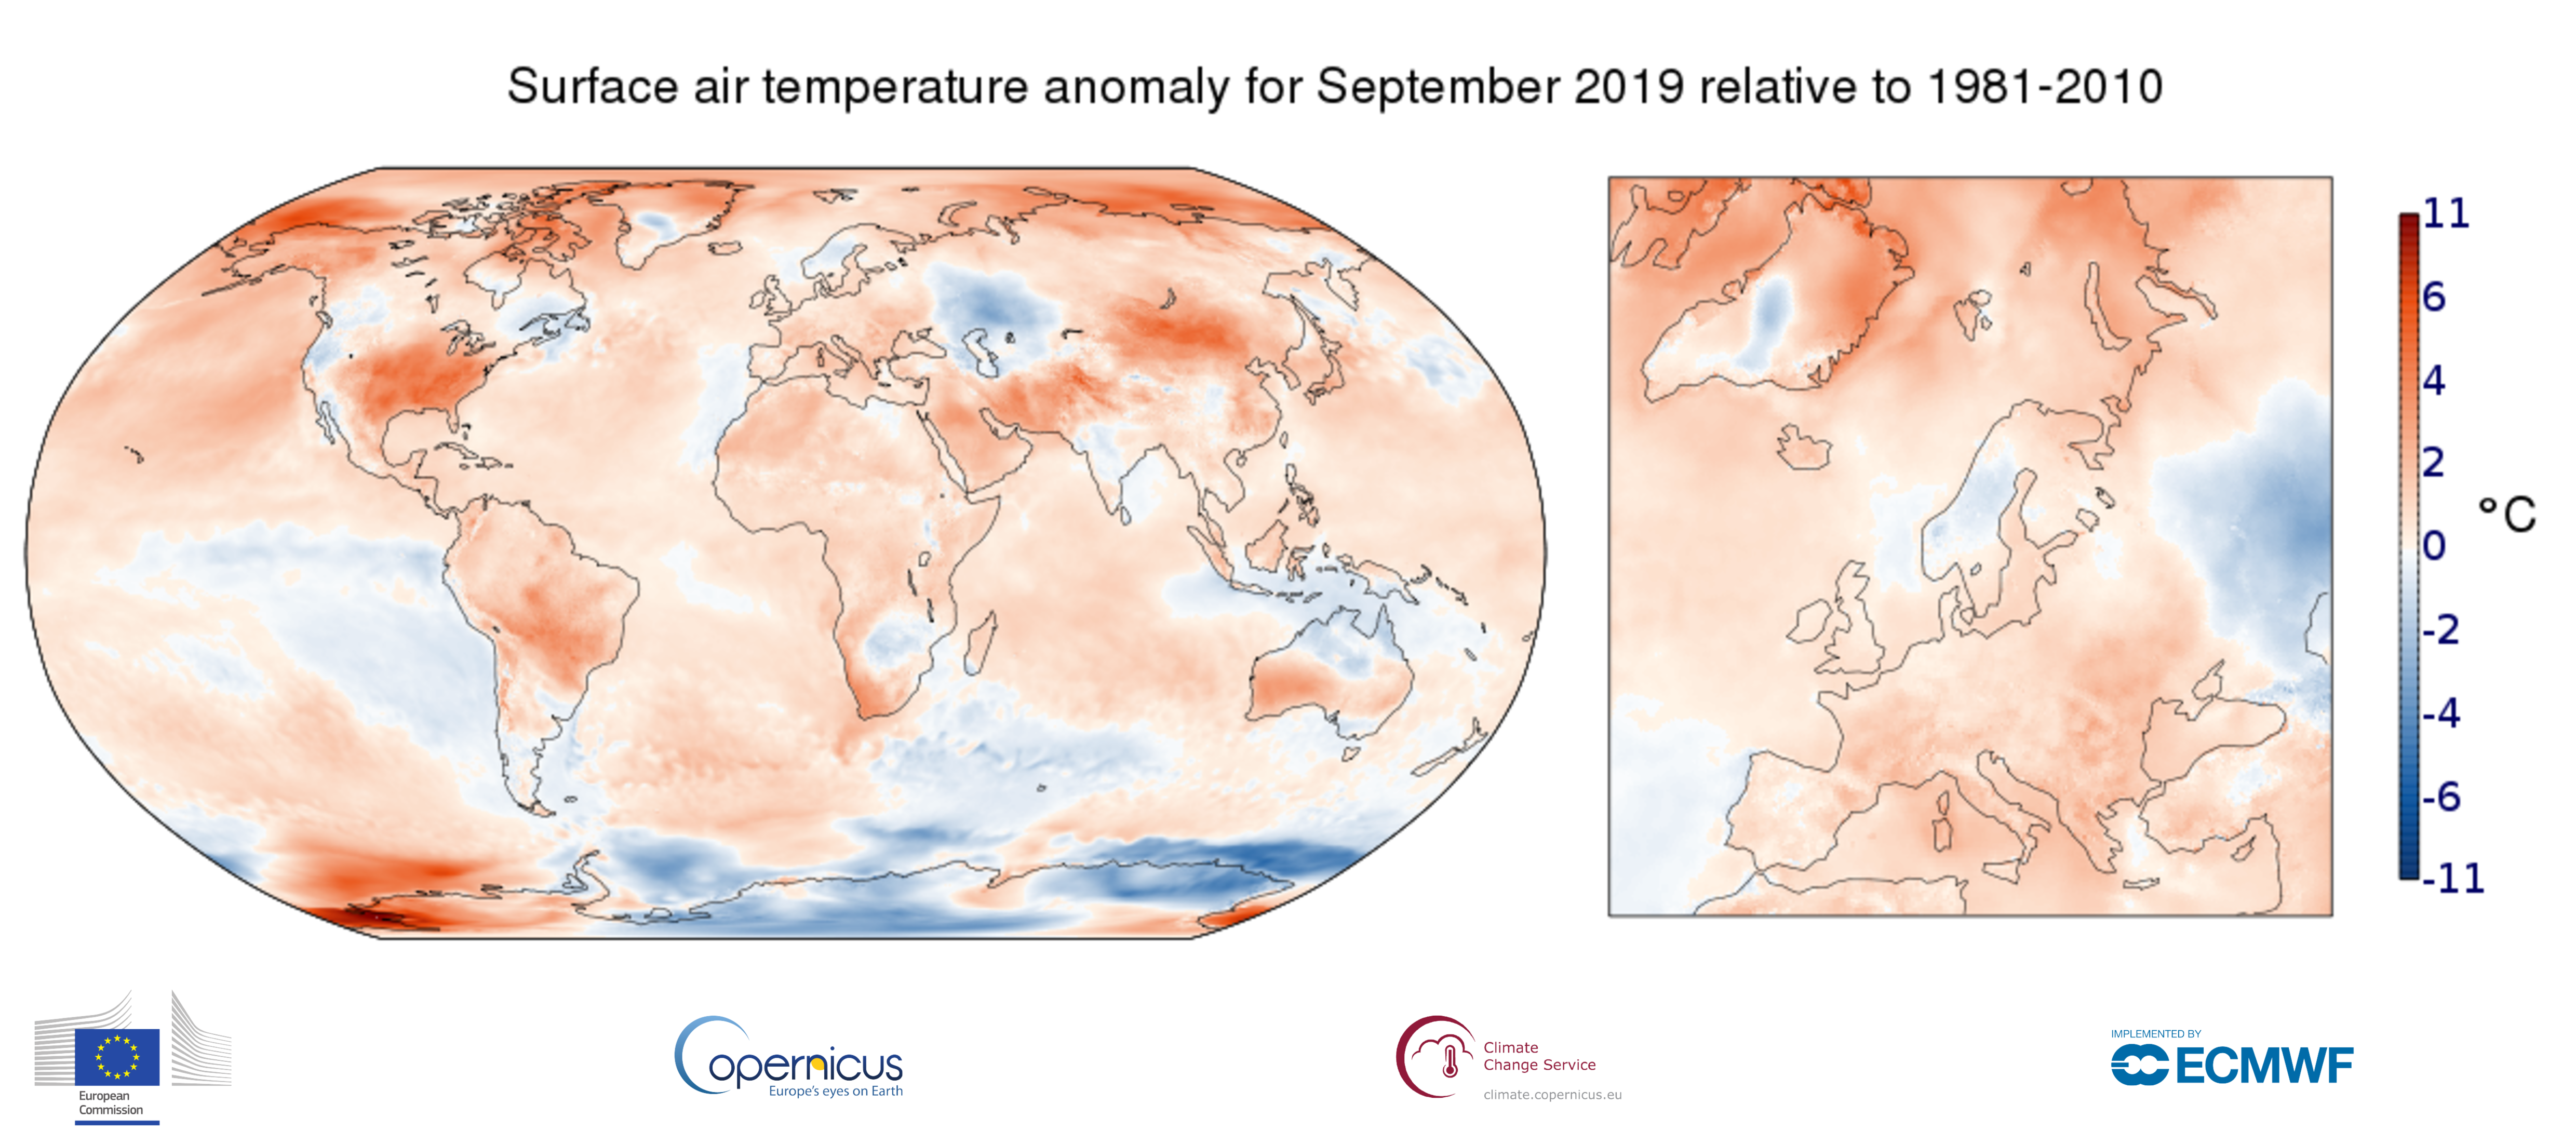 photo:Copernicus Climate Change Service/ECMWF;desc:Surface air temperature anomaly for September 2019 relative to the September average for the period 1981-2010. Data source - ERA5